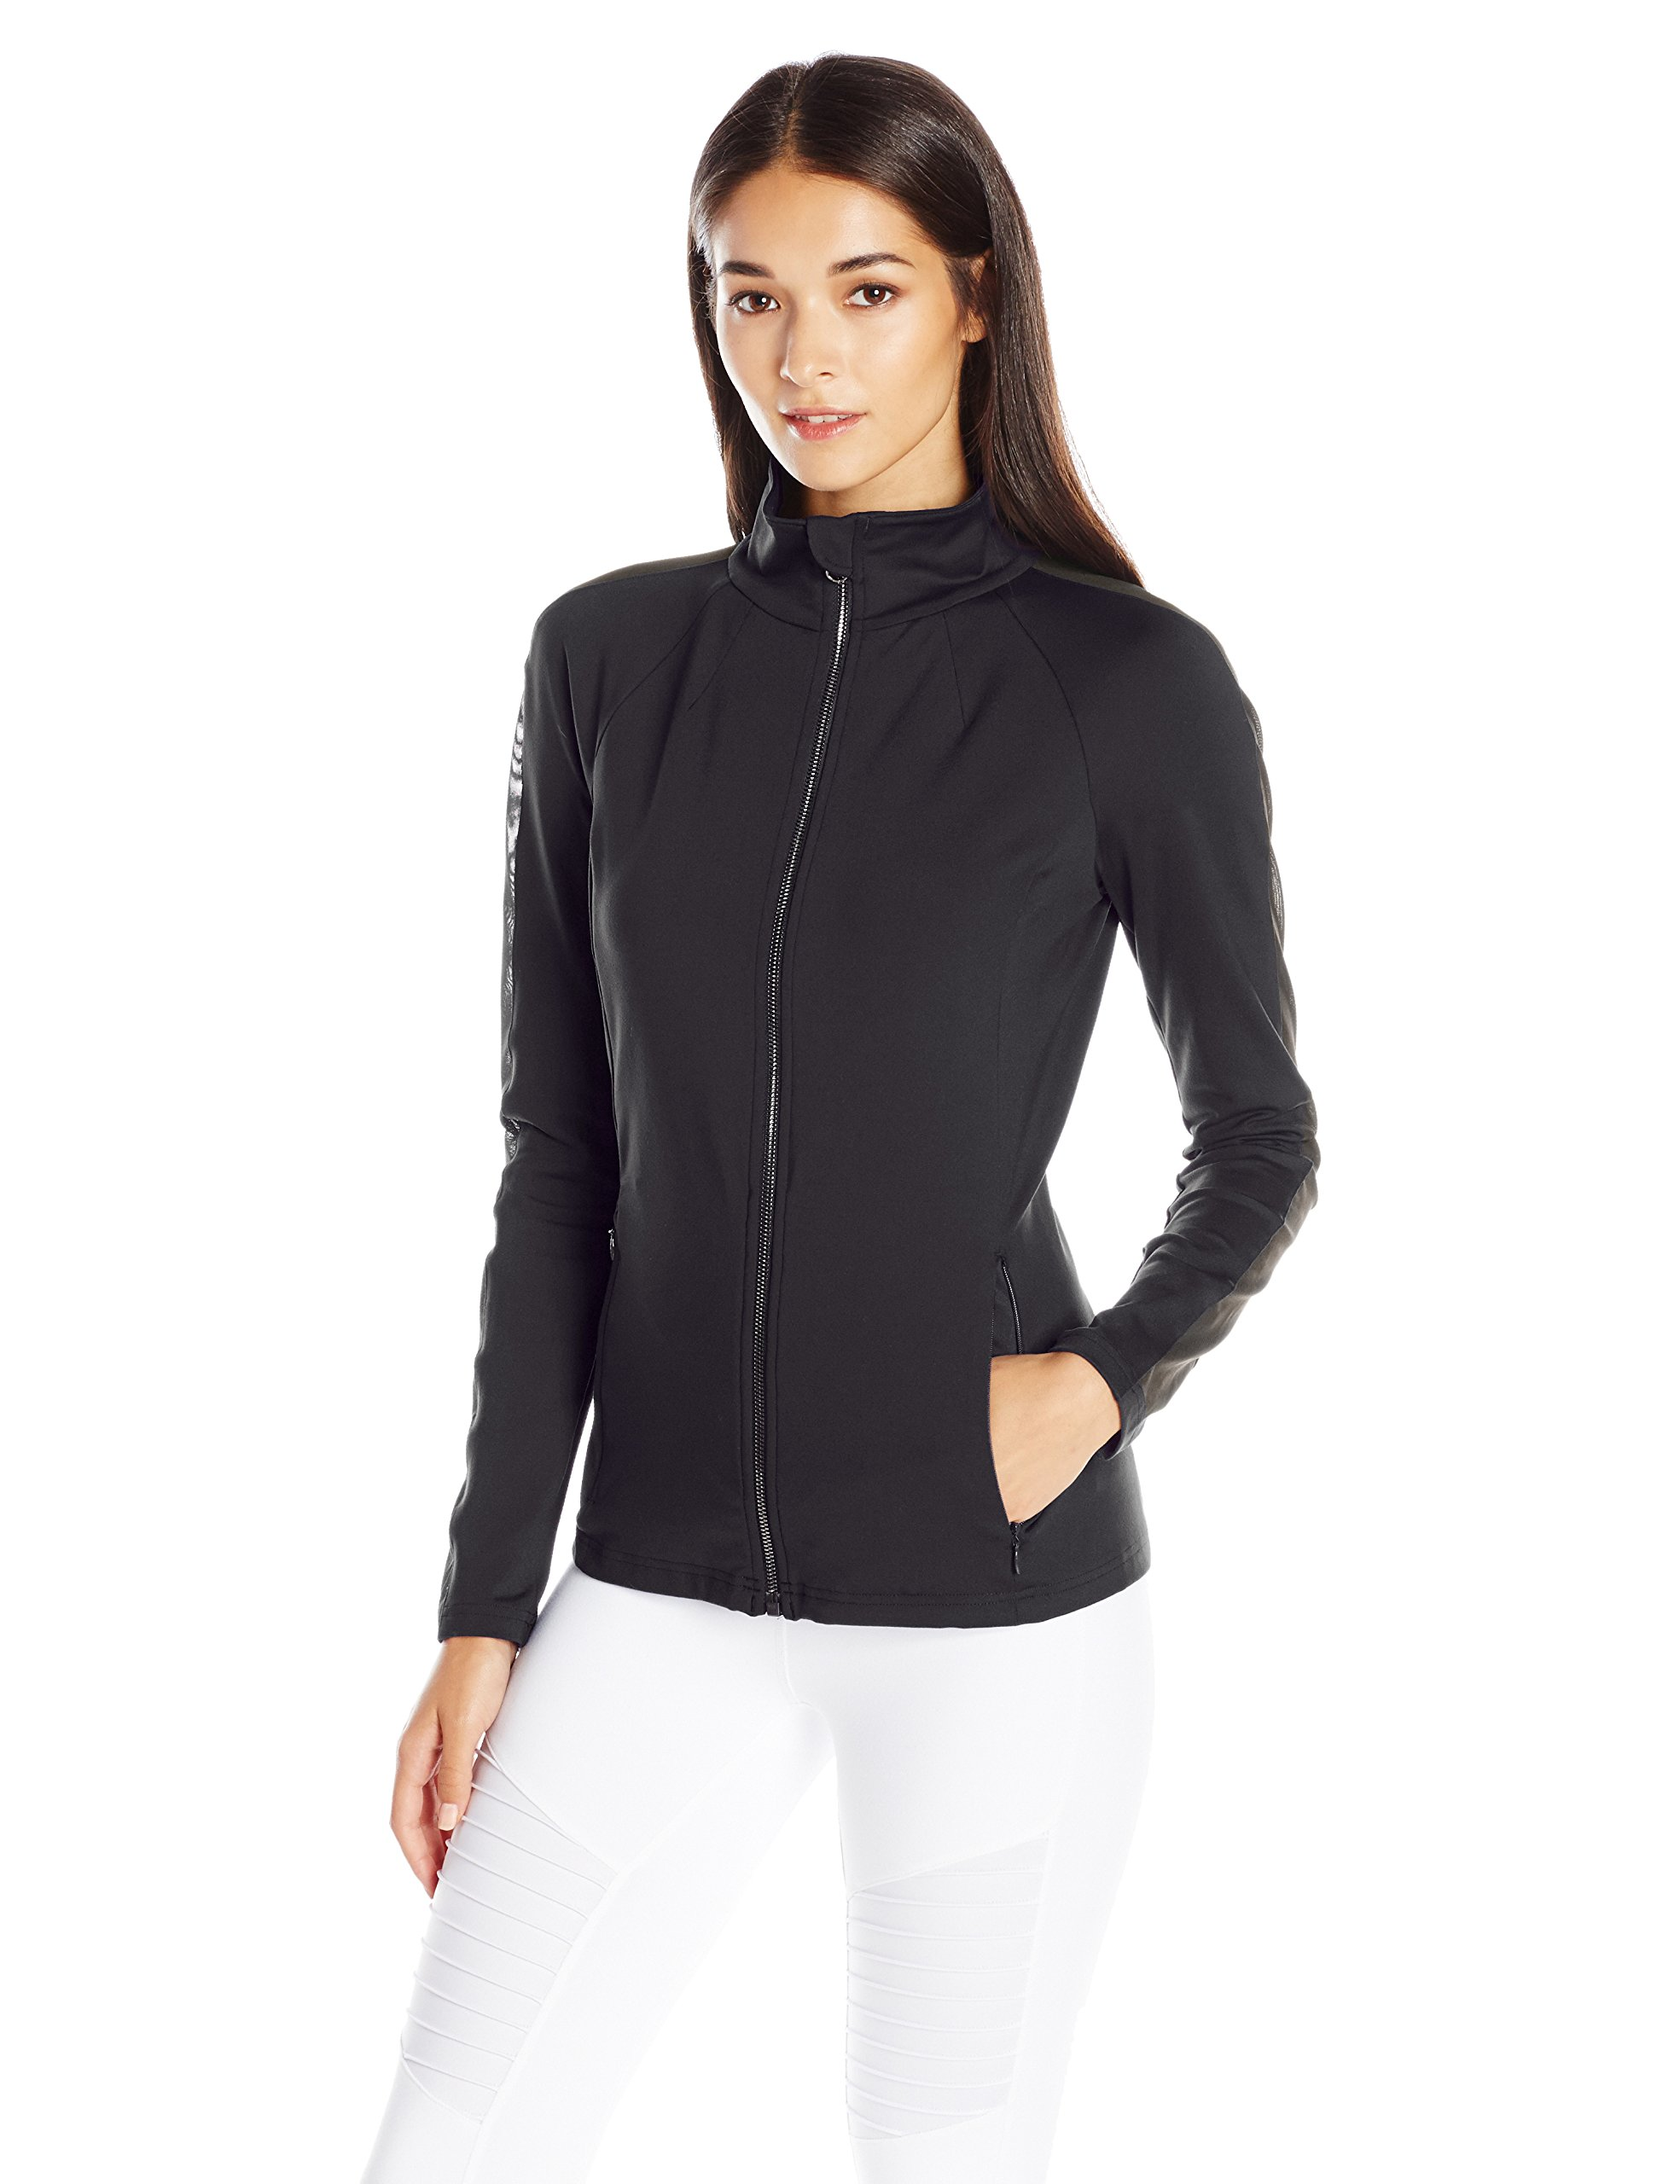 Alo Yoga Women's Kata Jacket, Black, M